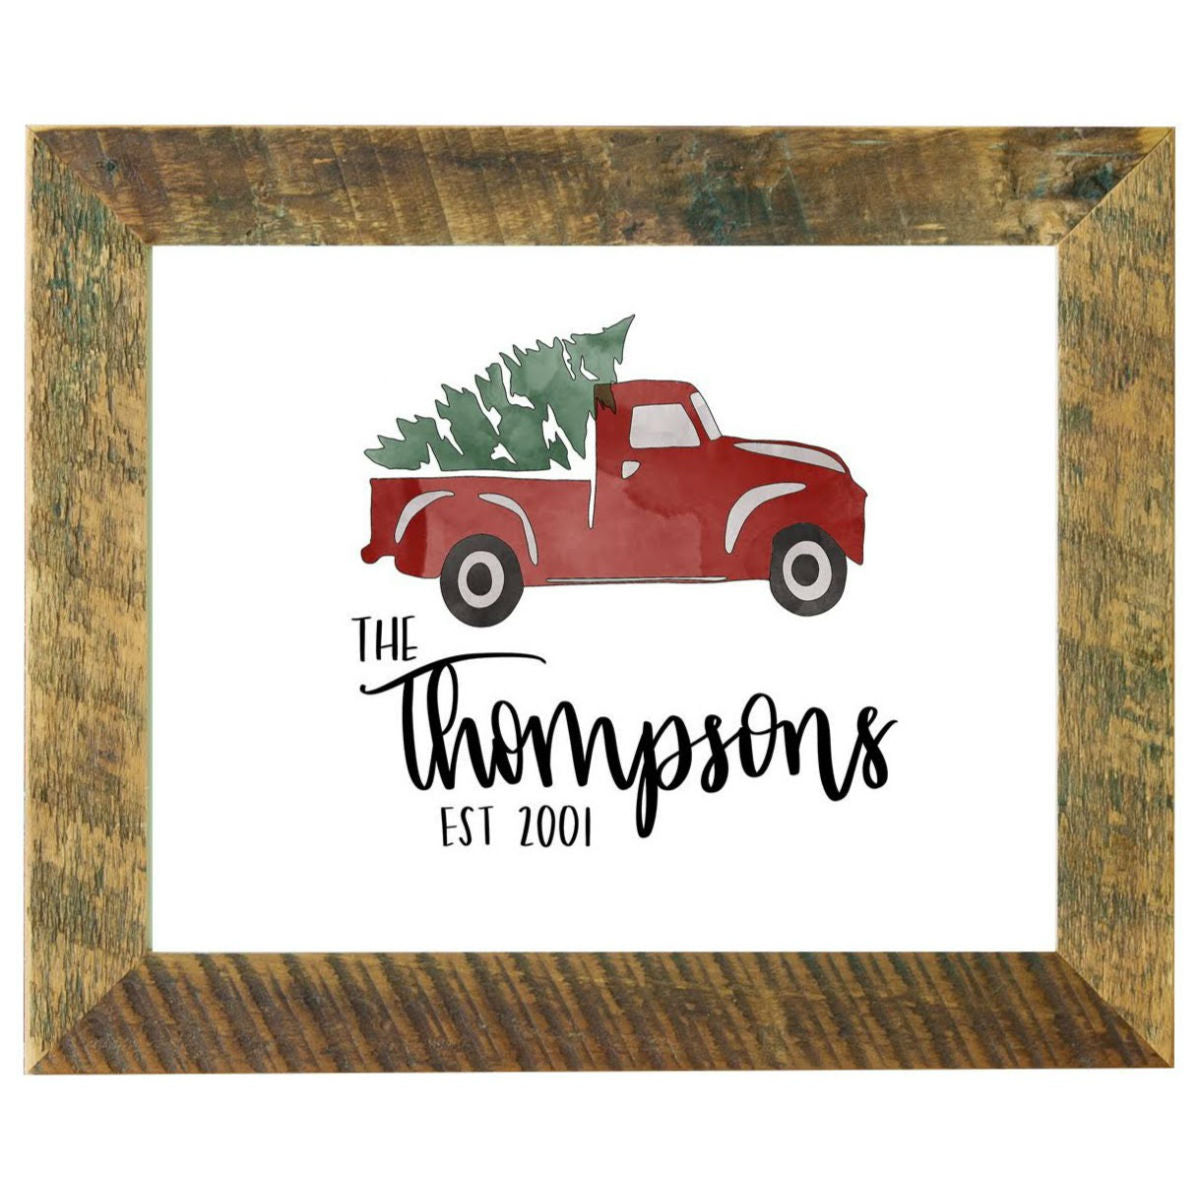 Family Personalized Sign Christmas Decor Tree Farm Vintage Red Truc Rustic Red Door Co